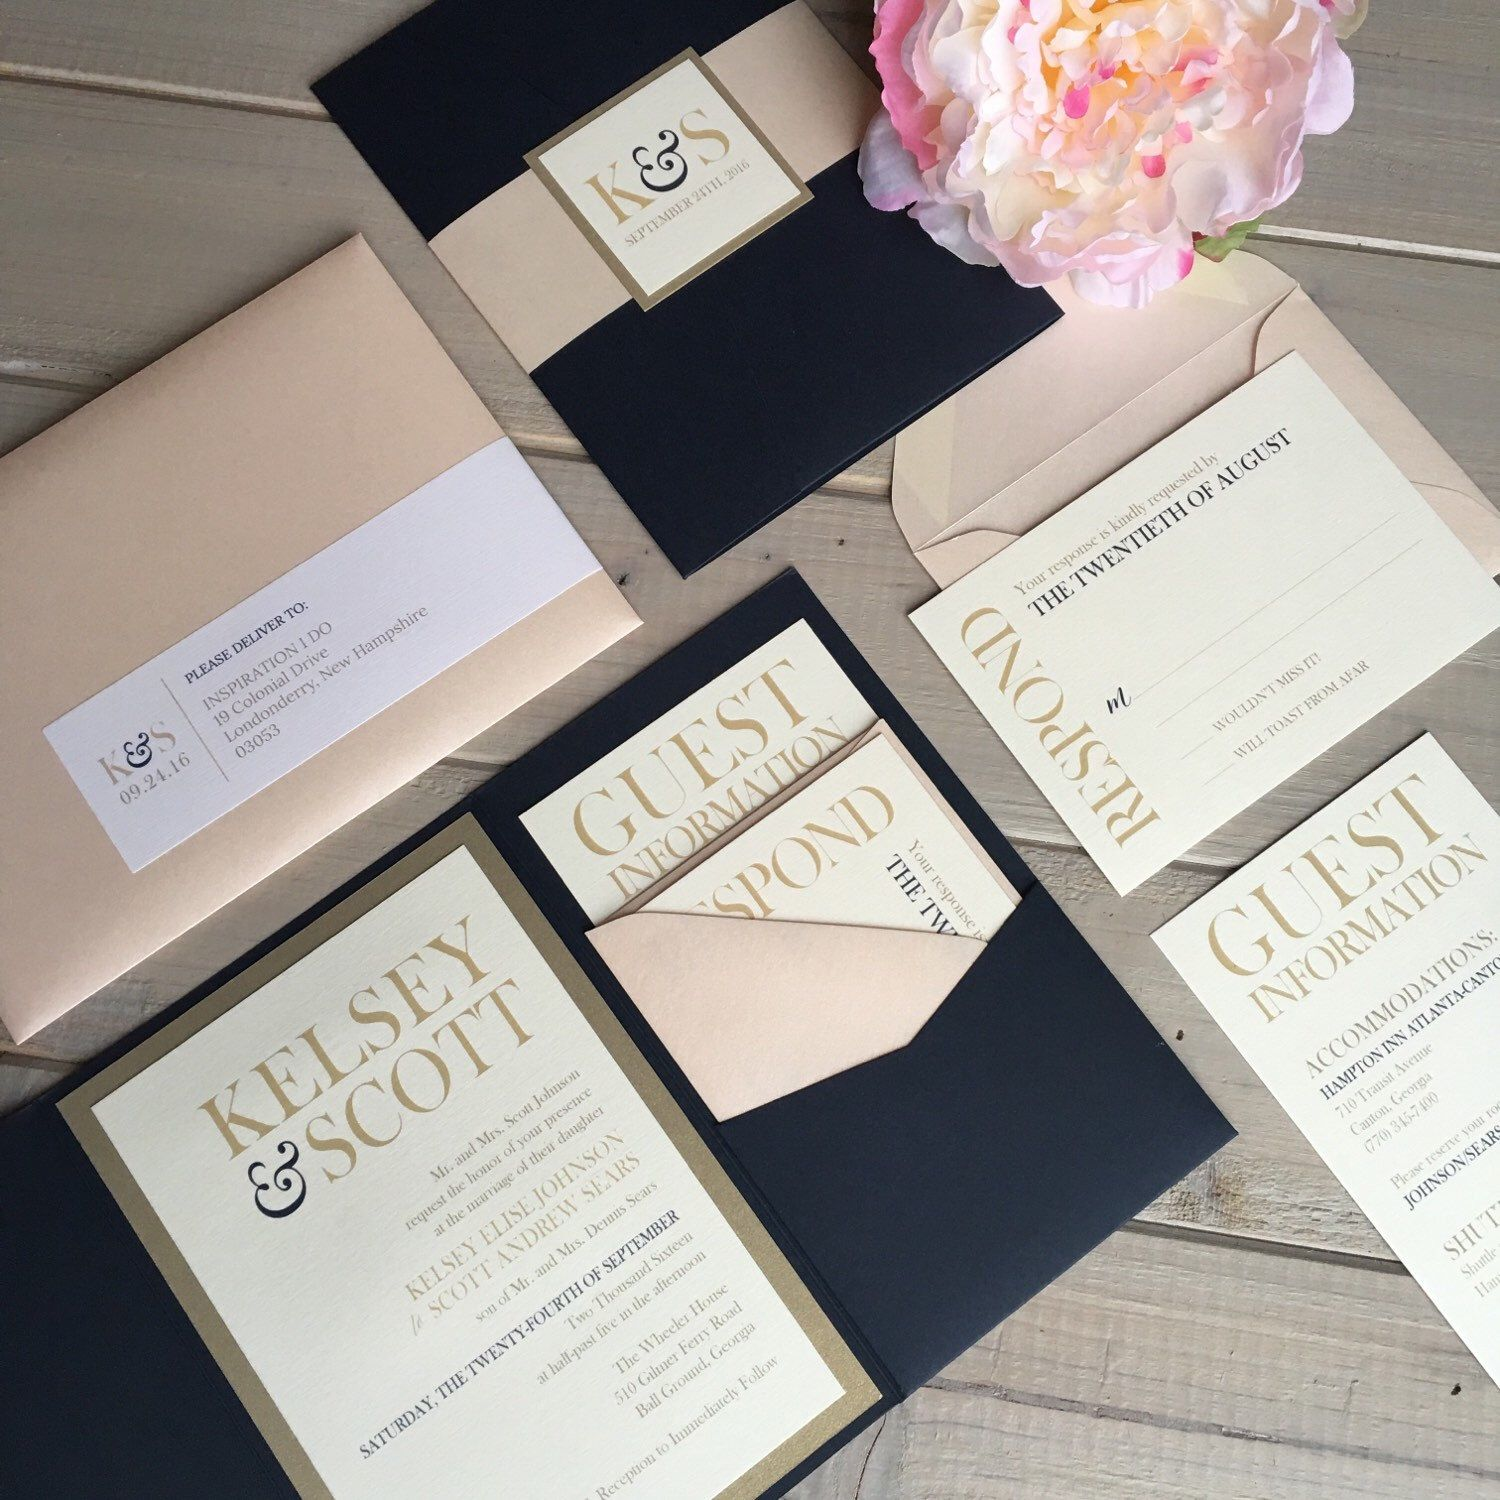 Pin by Cassie Groves on Wedding | Pinterest | Pink wedding ...